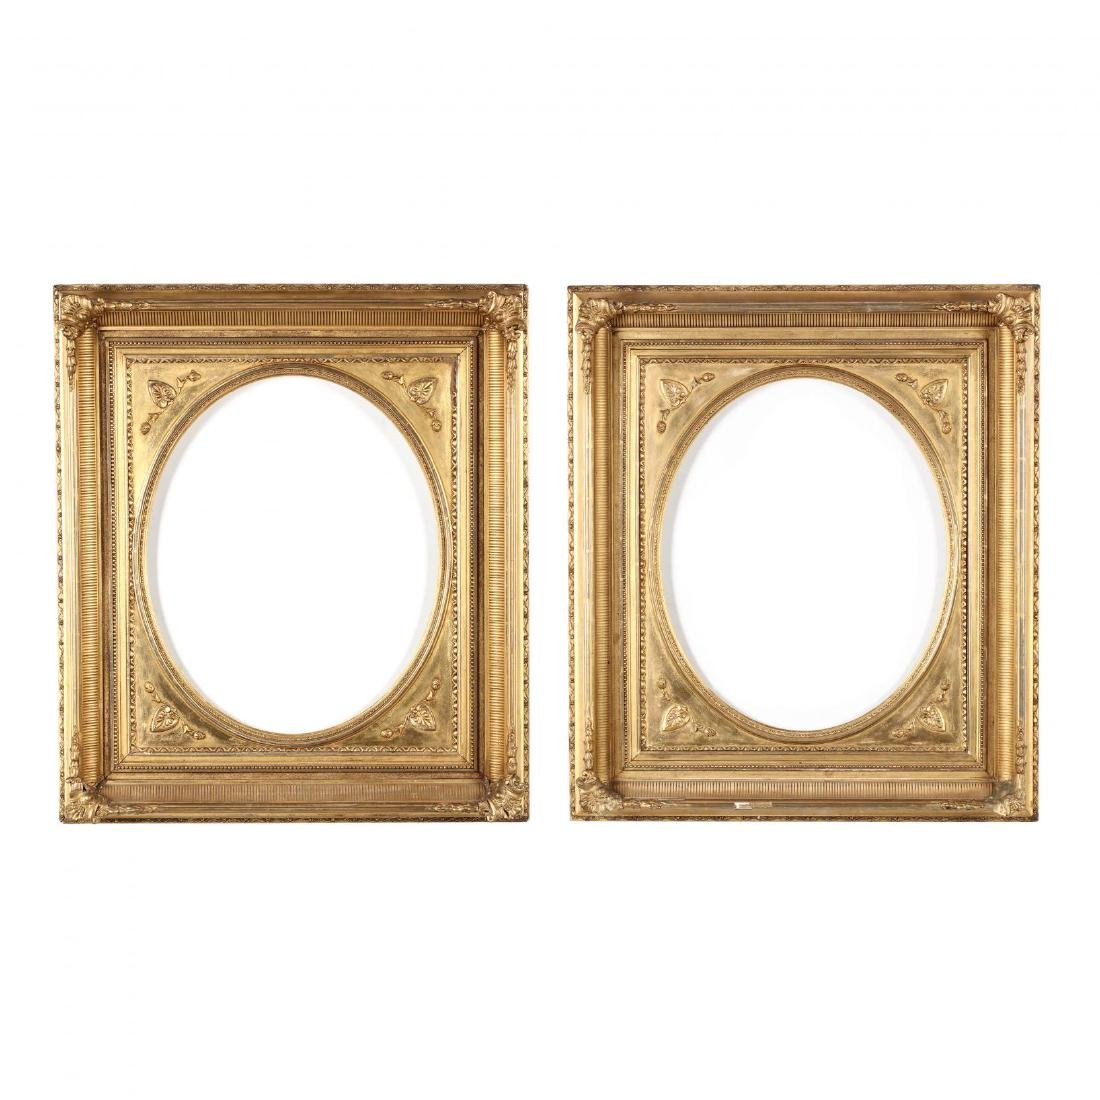 A Pair of Mid-19th Century American Gilt Frames